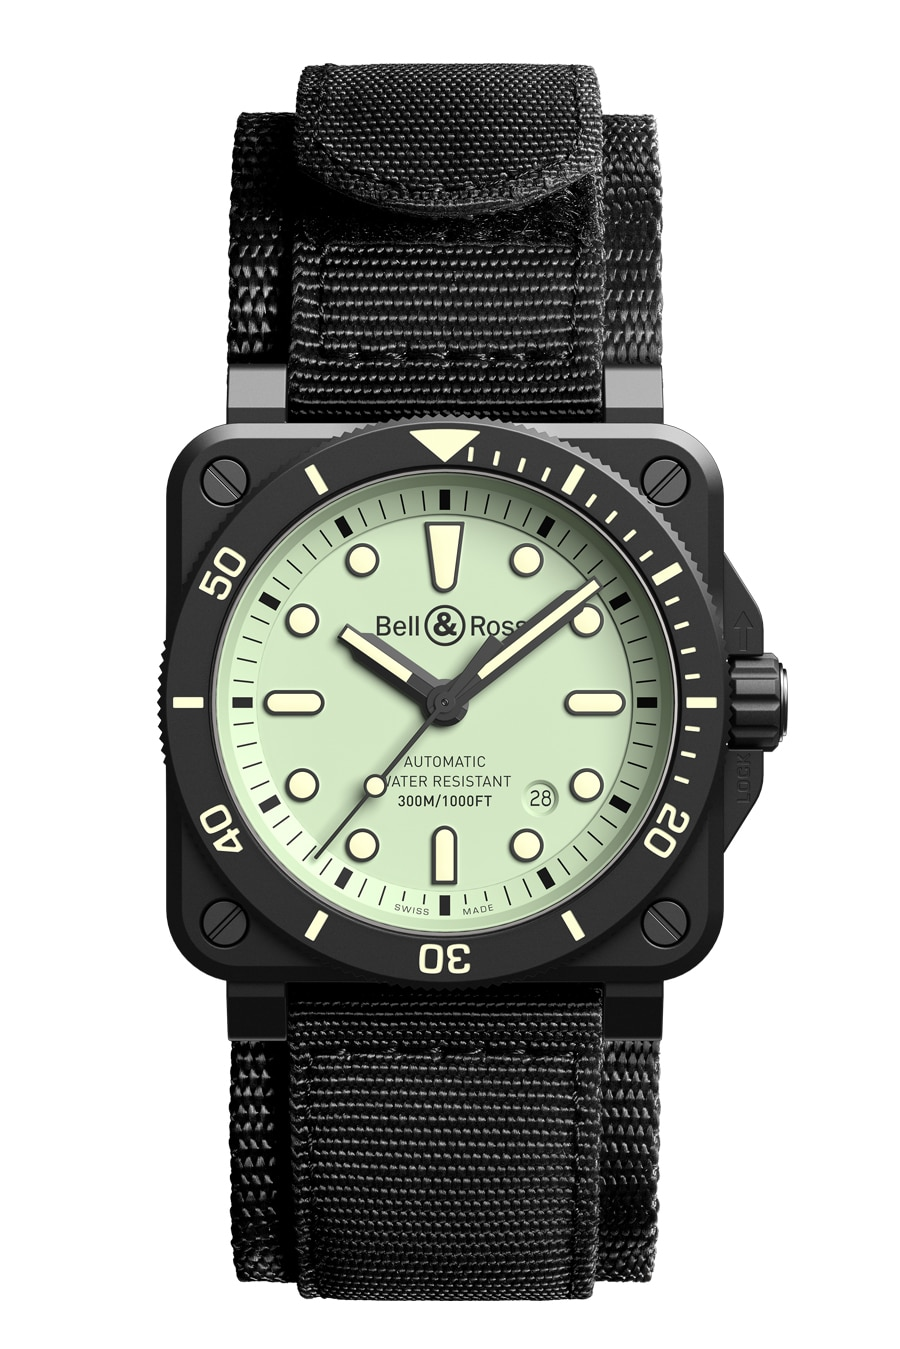 Bell & Ross 92 Diver Ceramic Full Lum Scratch Face Taucheruhrenspecial 2020